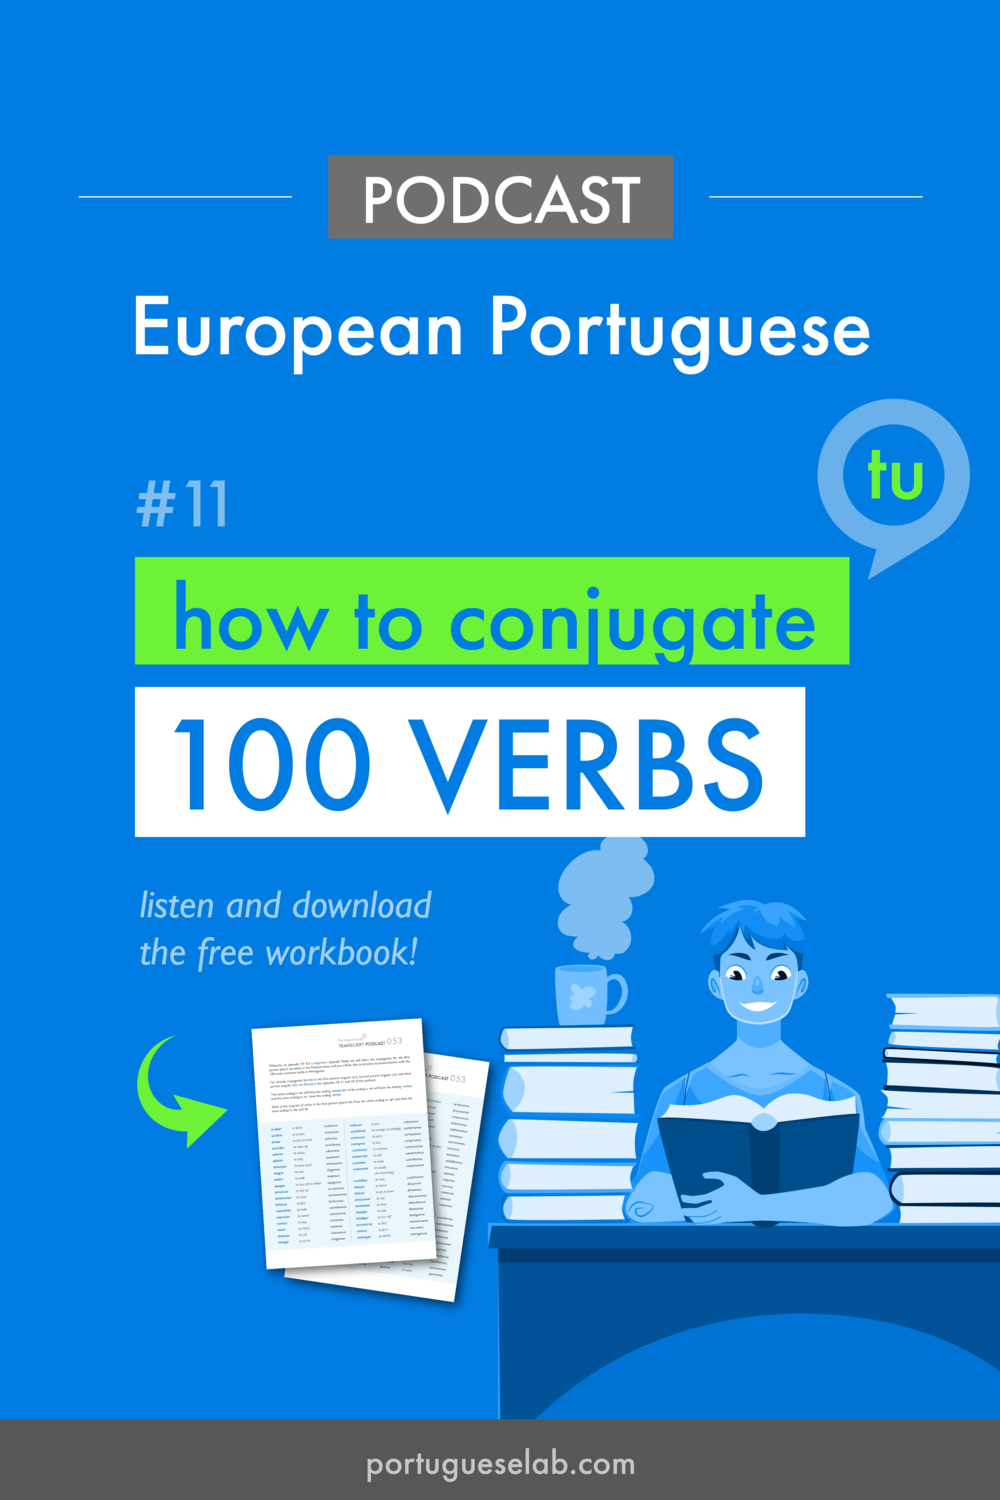 Portuguese Lab Podcast - European Portuguese - 11 - Verb conjugation - tu.png